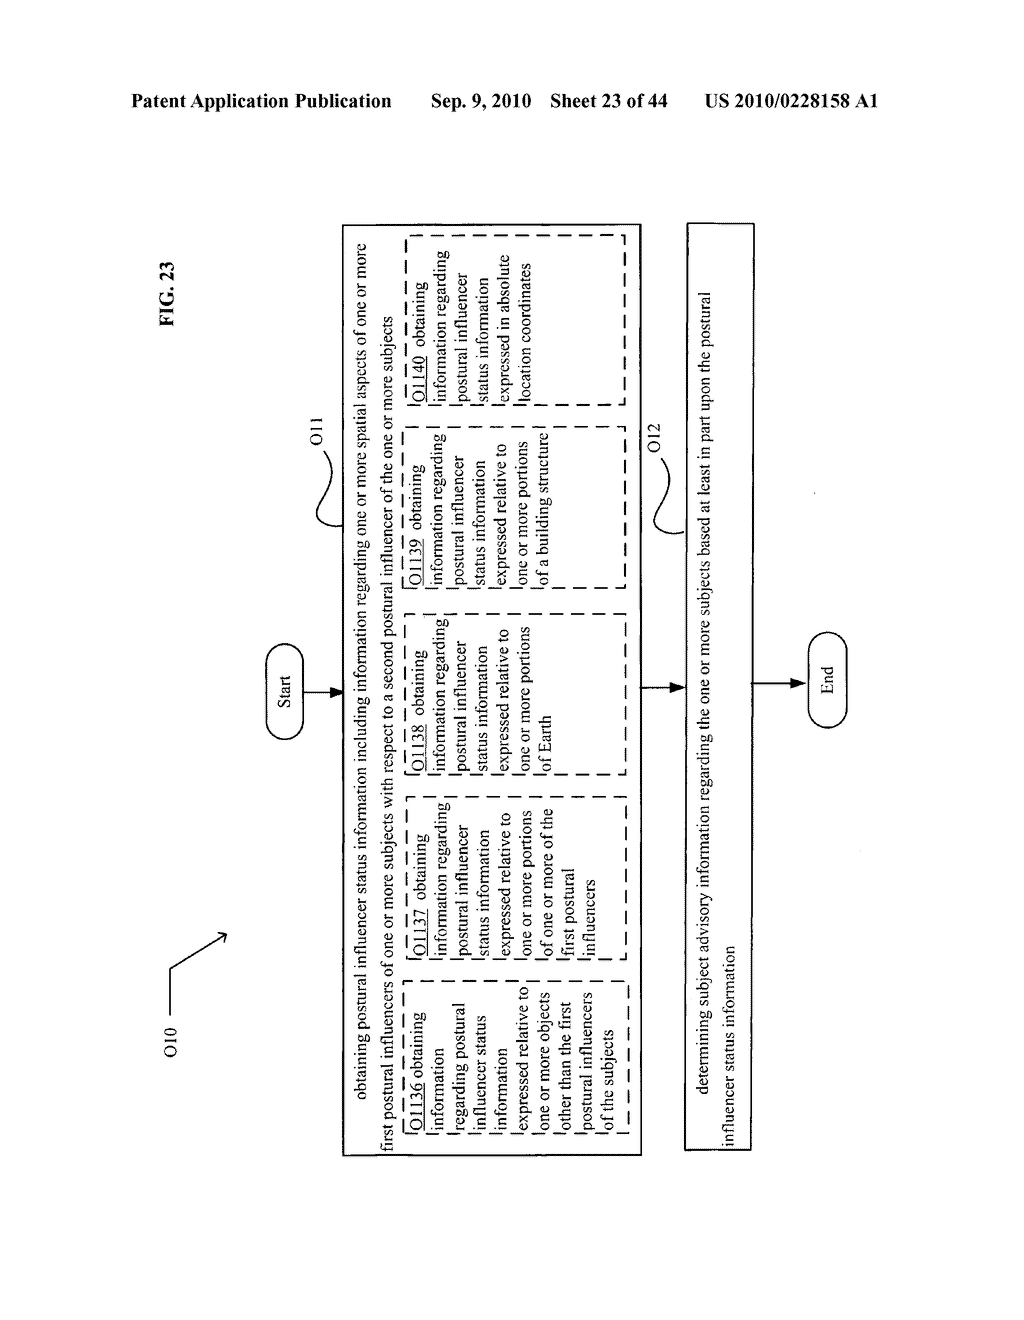 POSTURAL INFORMATION SYSTEM AND METHOD INCLUDING DEVICE LEVEL DETERMINING OF SUBJECT ADVISORY INFORMATION BASED ON SUBJECT STATUS INFORMATION AND POSTURAL INFLUENCER STATUS INFORMATION - diagram, schematic, and image 24